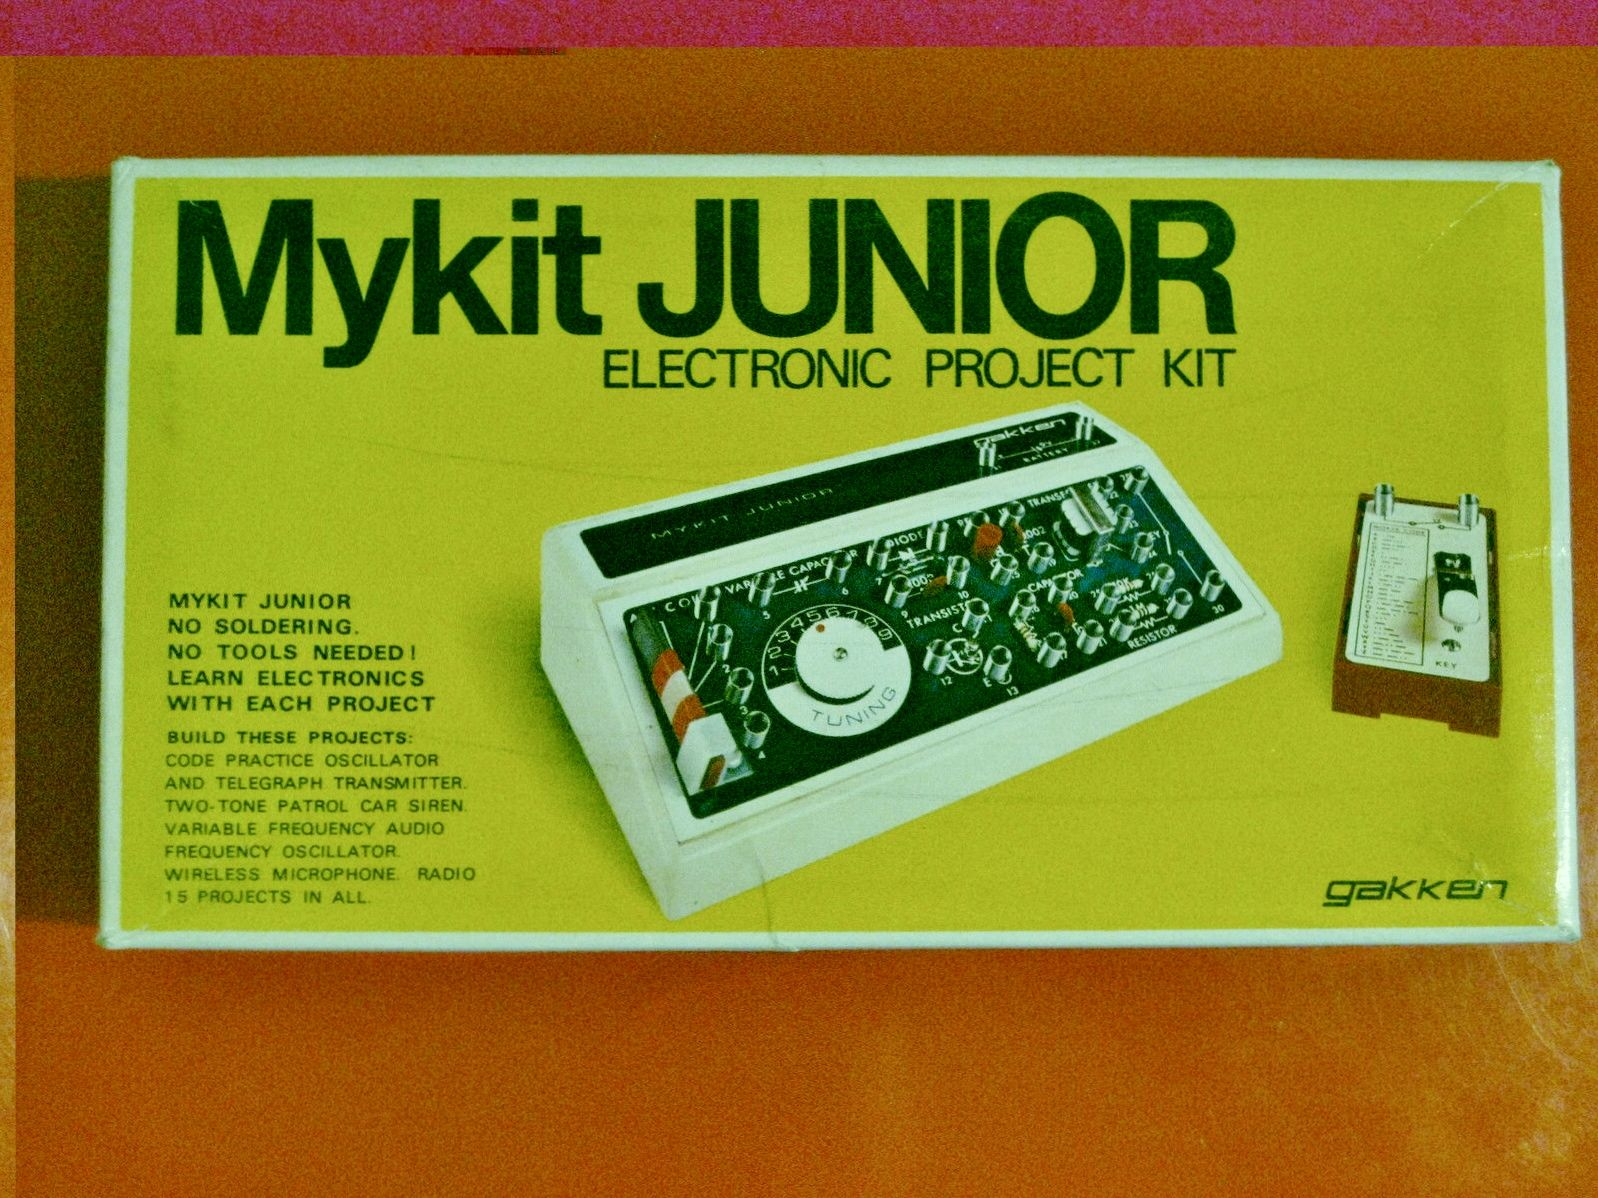 Électronique/Electronic Kit